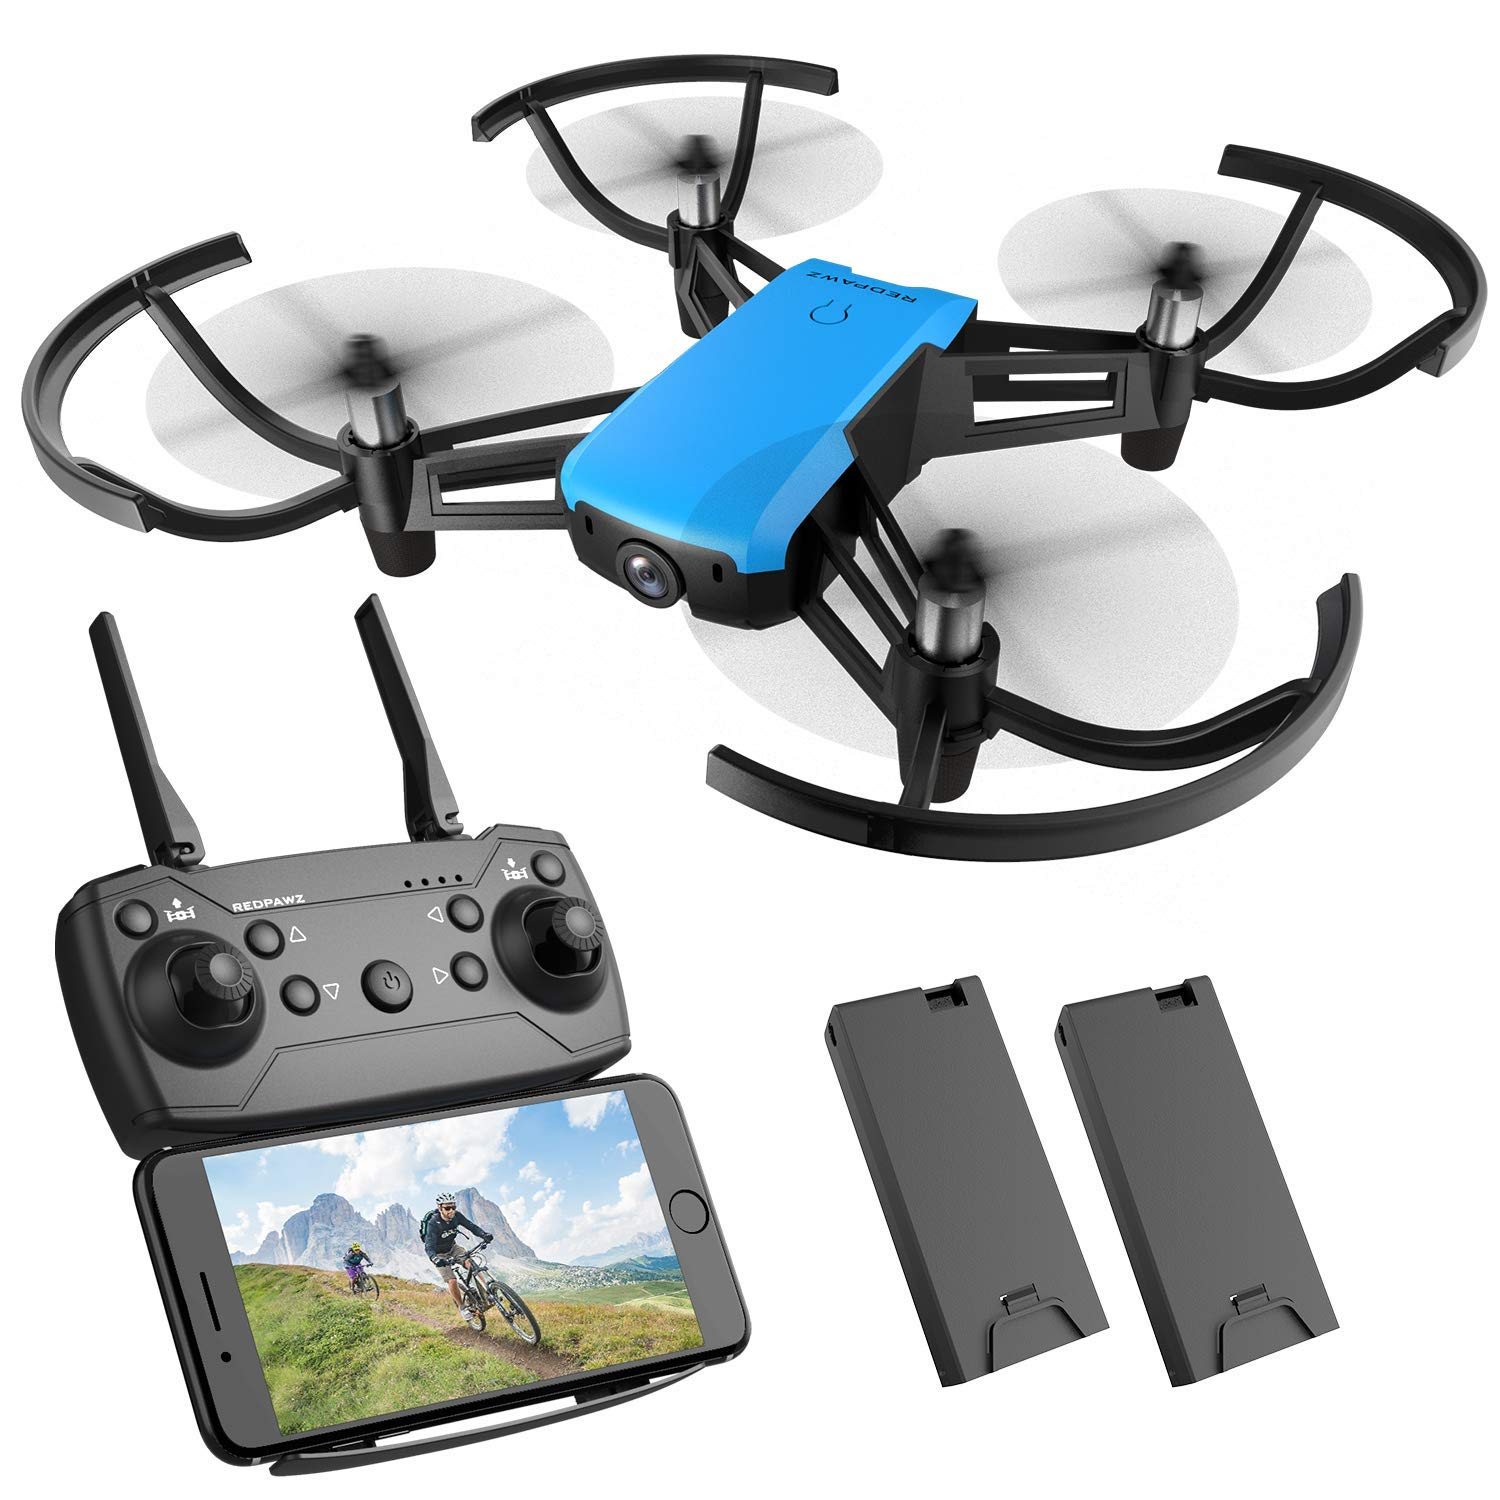 R020 REDPAWZ Drone With Camera, R020 RC Drone Mini Quadcopter Wifi FPV Drone 2.4G Racing Drone Altitude Hold Gravity Sensor with 720P HD Wide Angle Camera RTF Headless Mode One Key Takeoff Landing